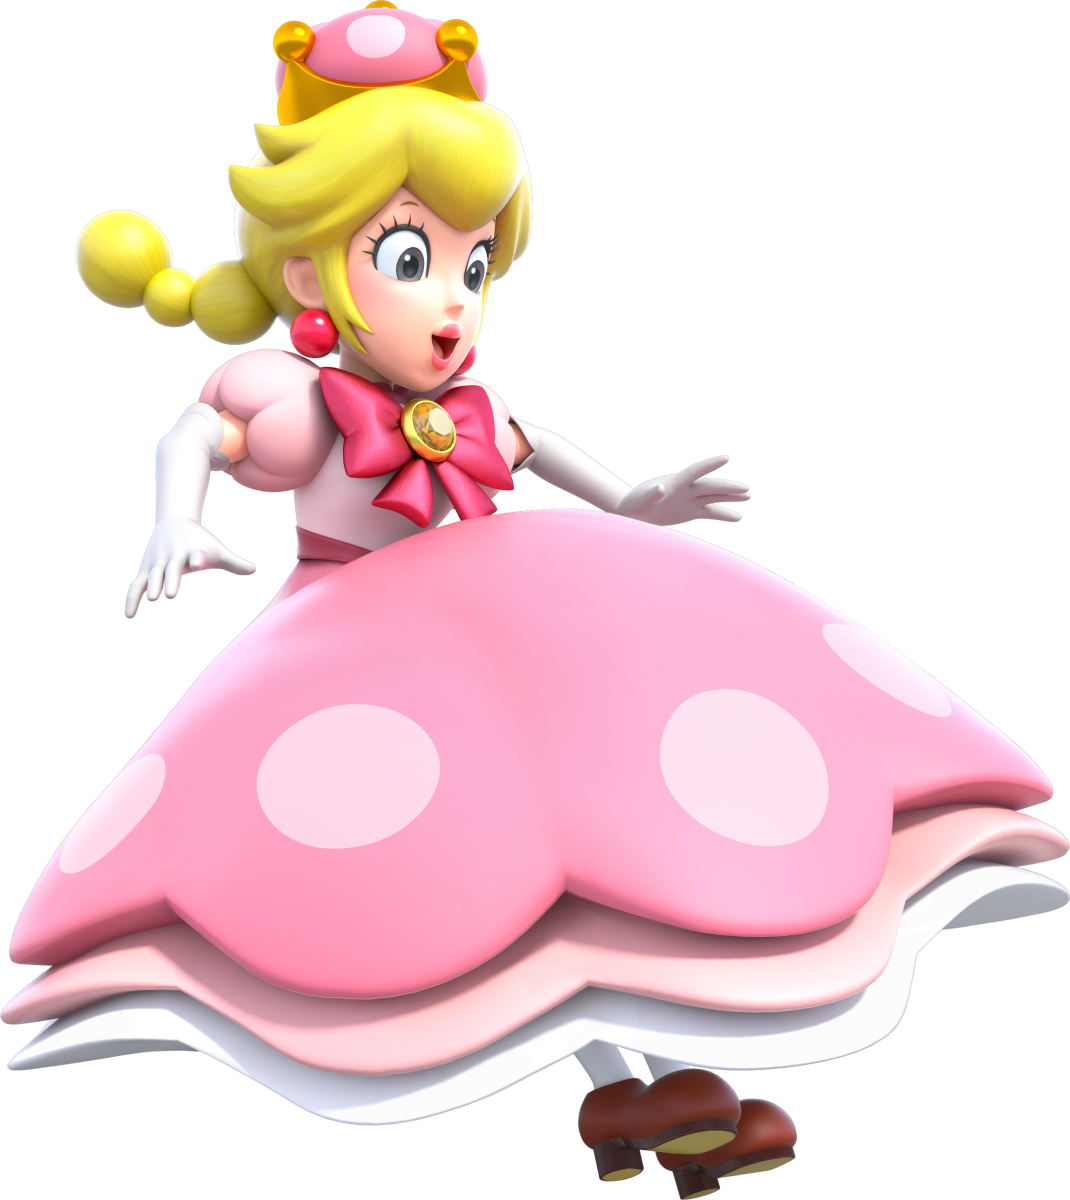 Does the Existence of Peachette Disprove the Mario Galaxy